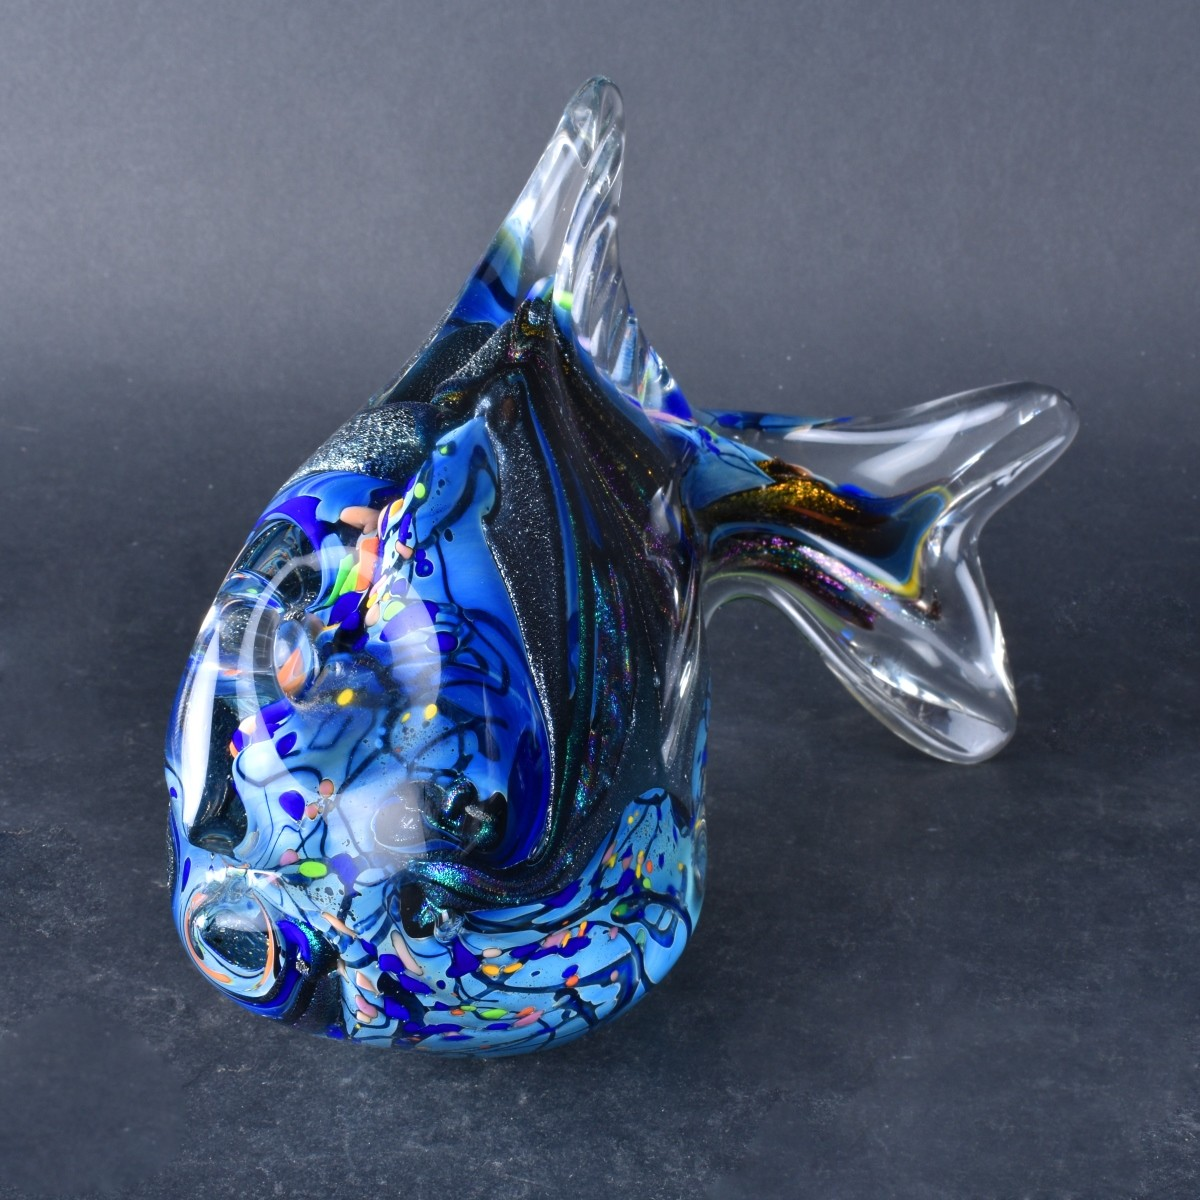 Two (2) Rollin Karg Art Glass Fish Figurines